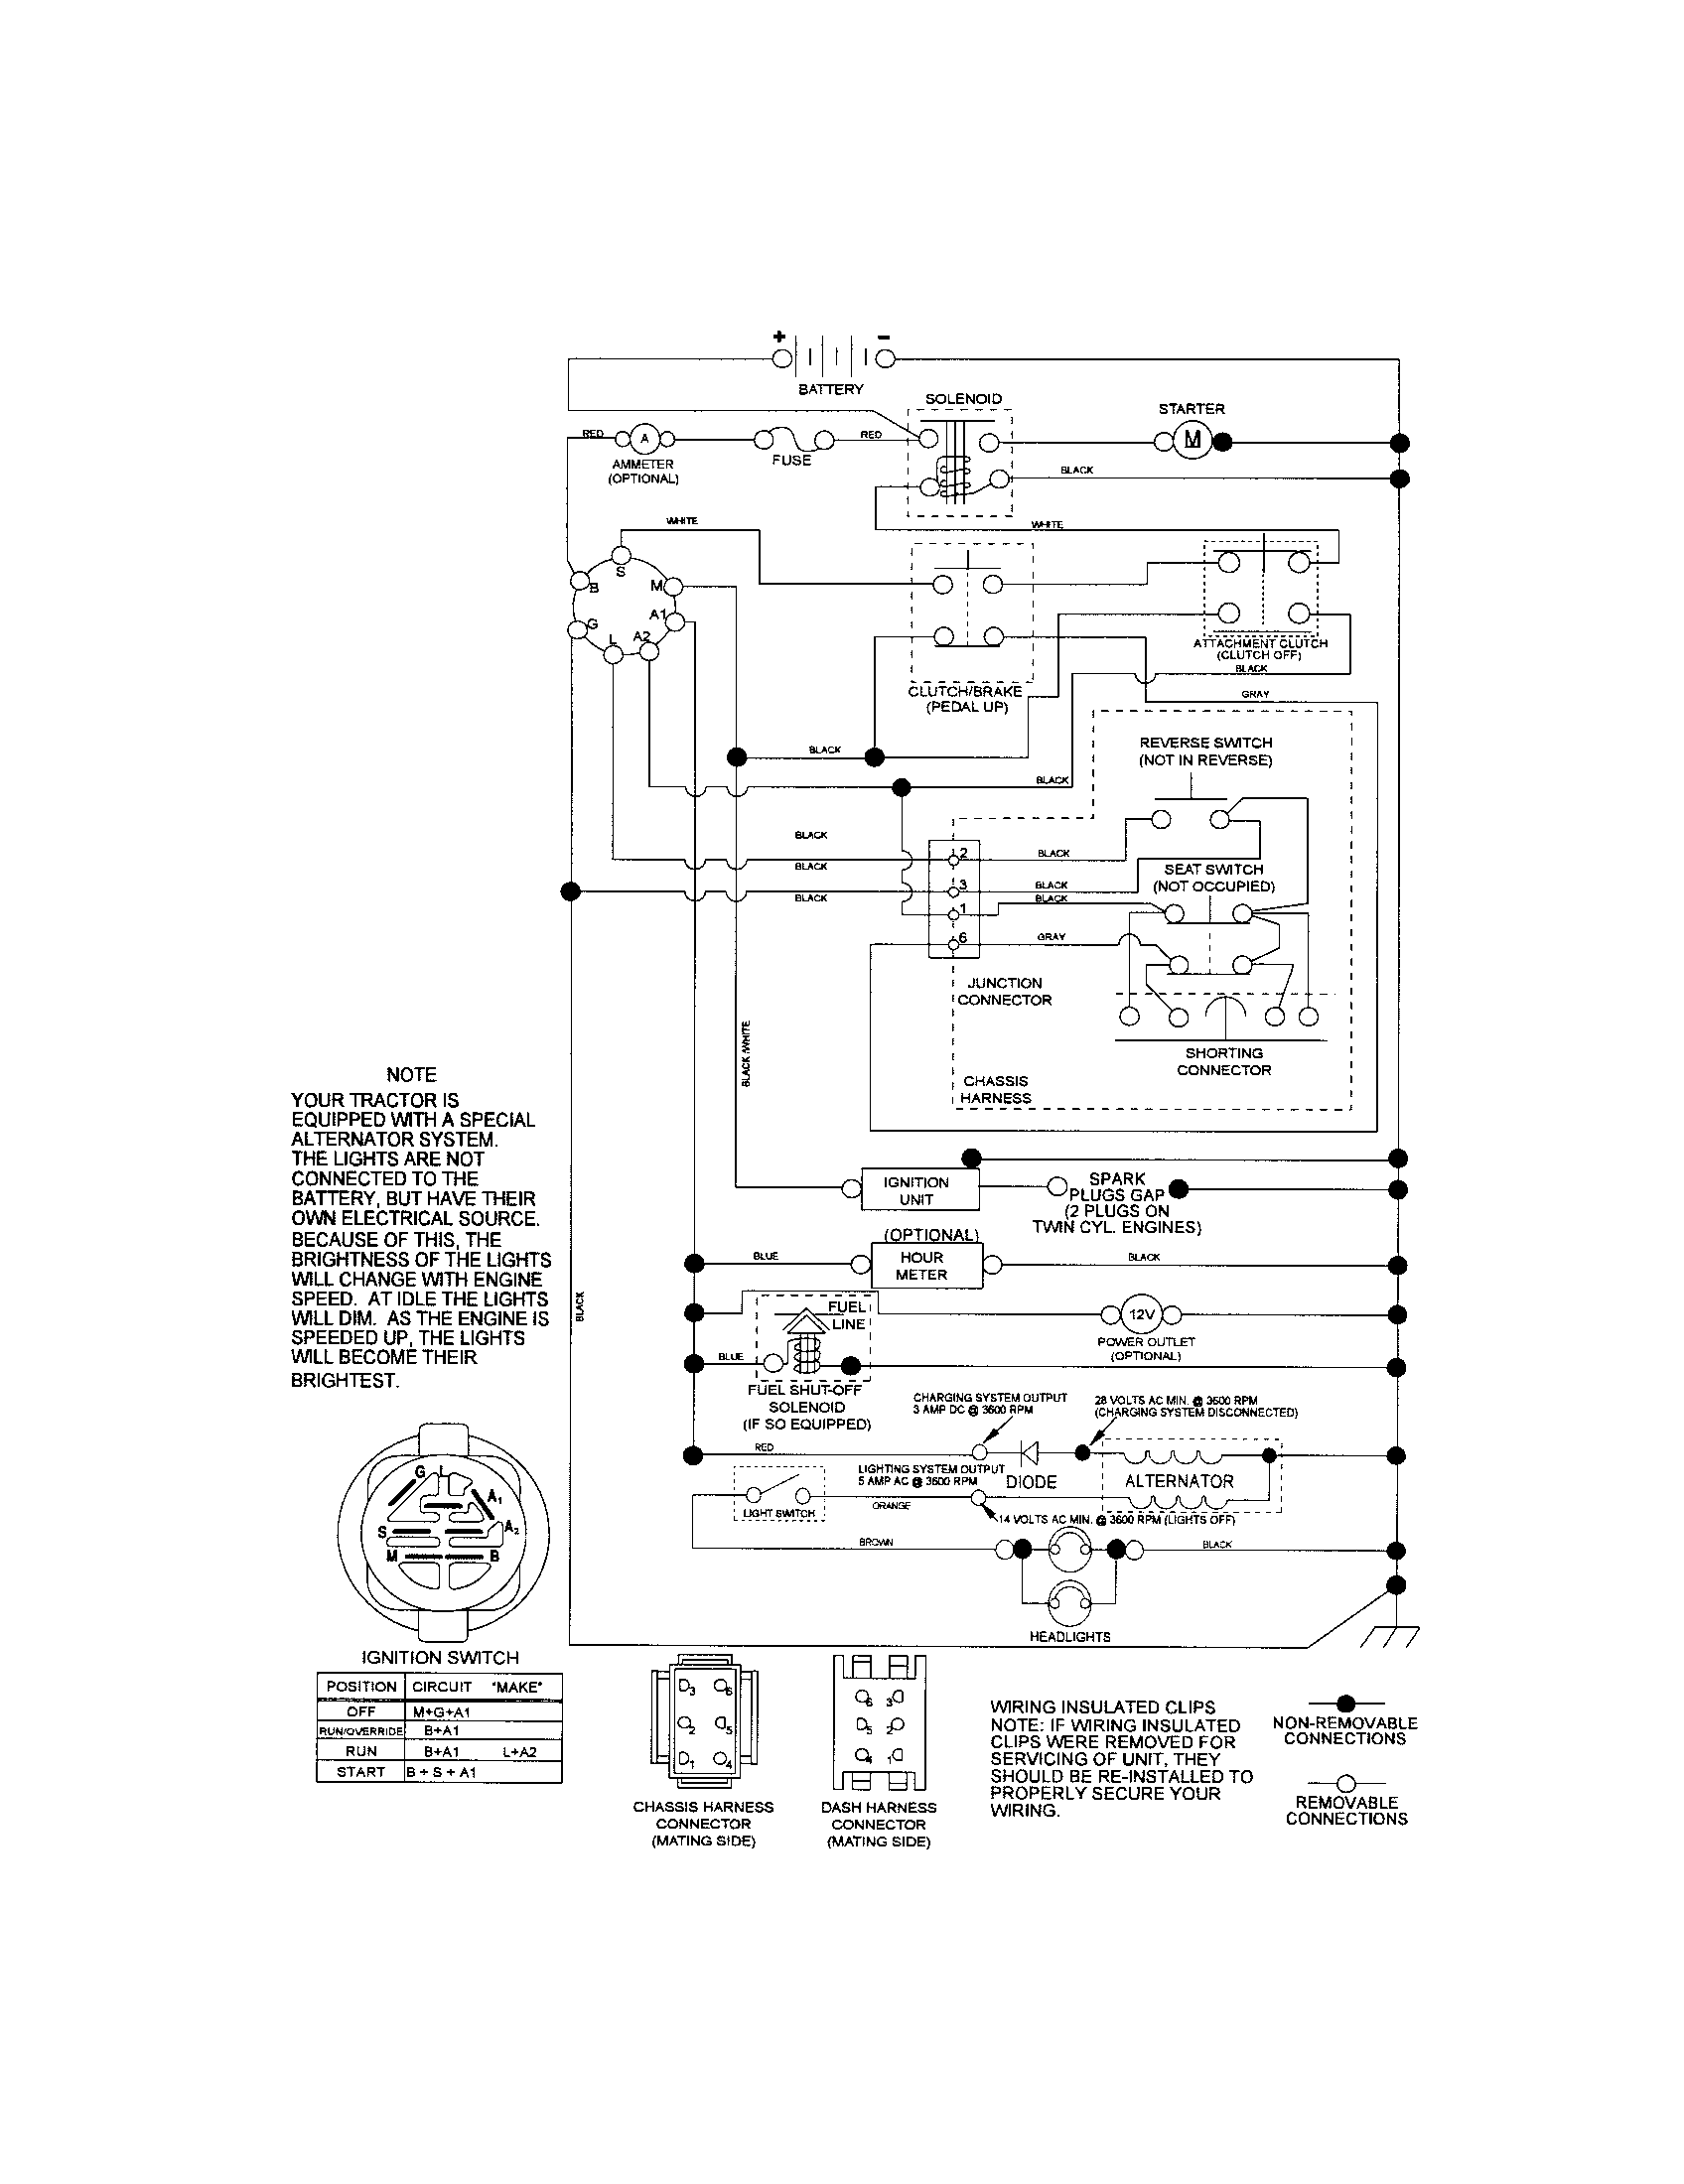 craftsman lawn mower wiring diagram off road light dls 3500